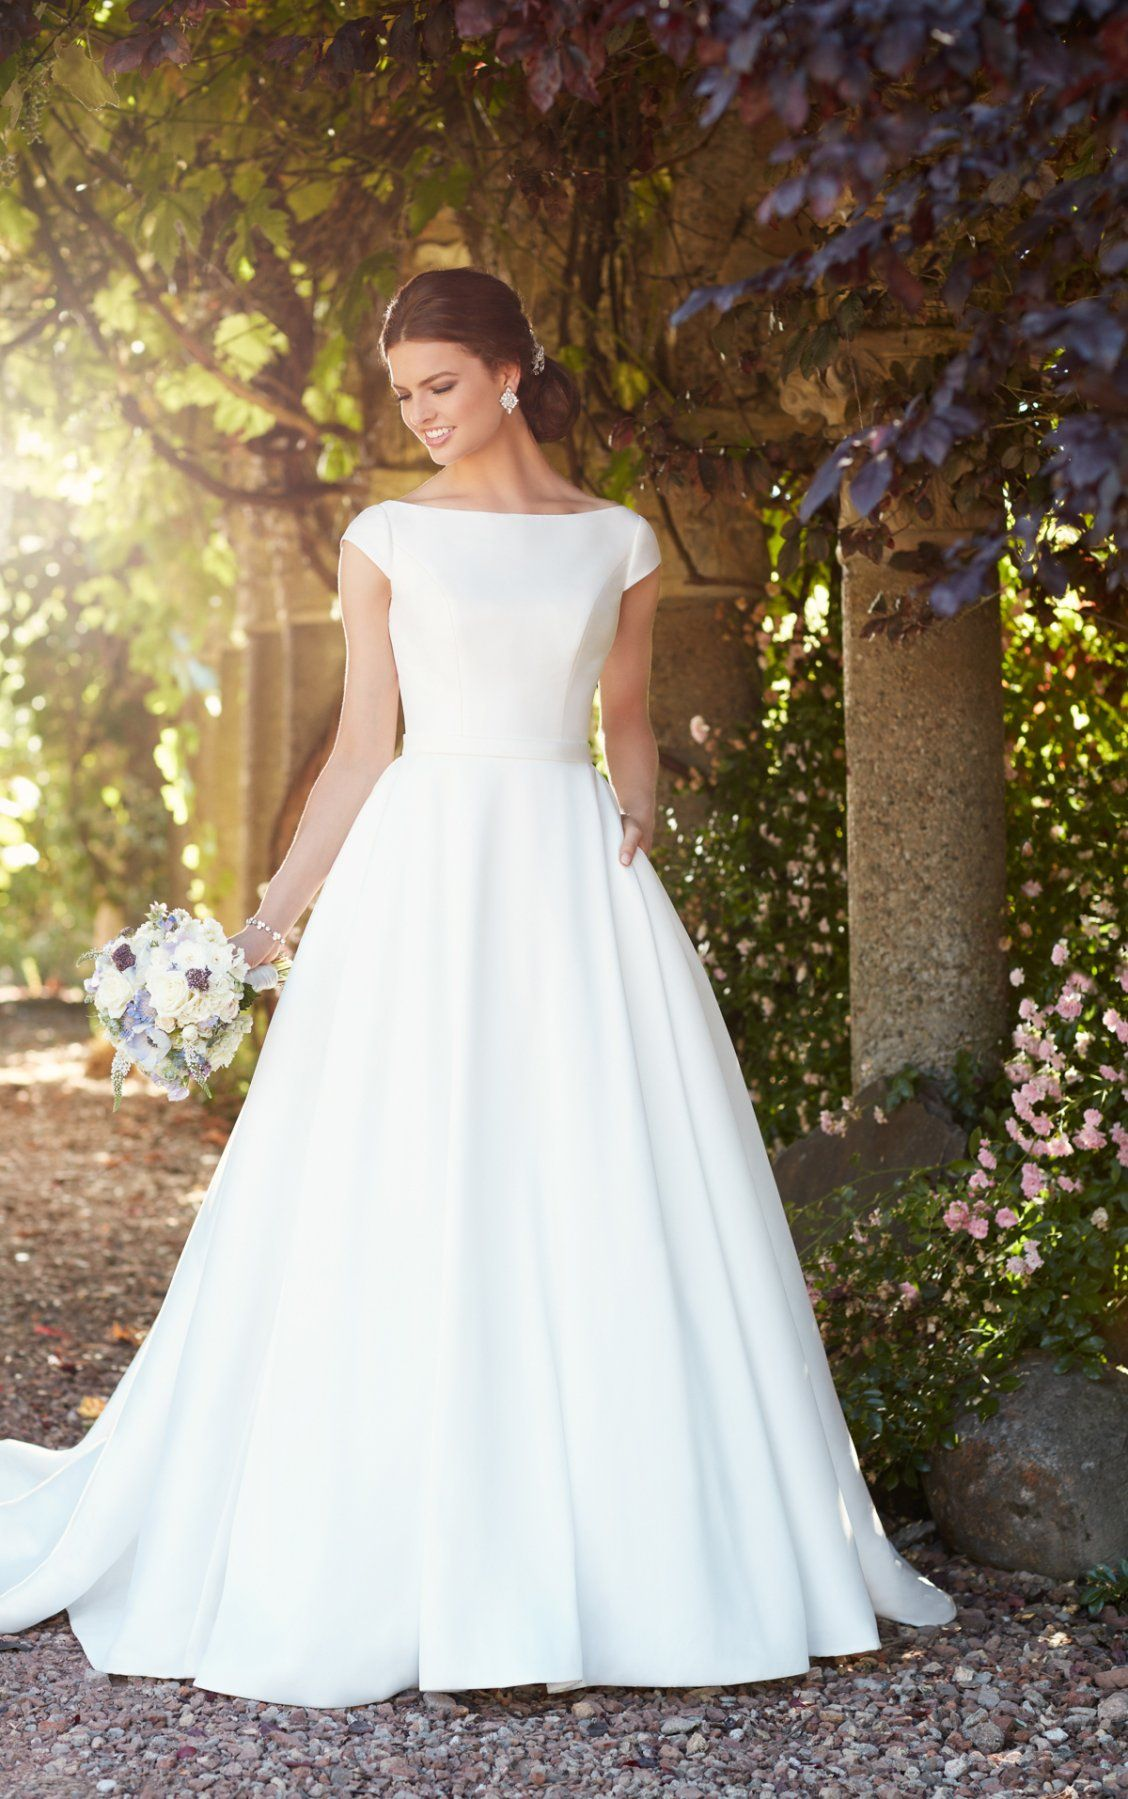 Modest Wedding Dress with Sleeves in 2020 Modest wedding